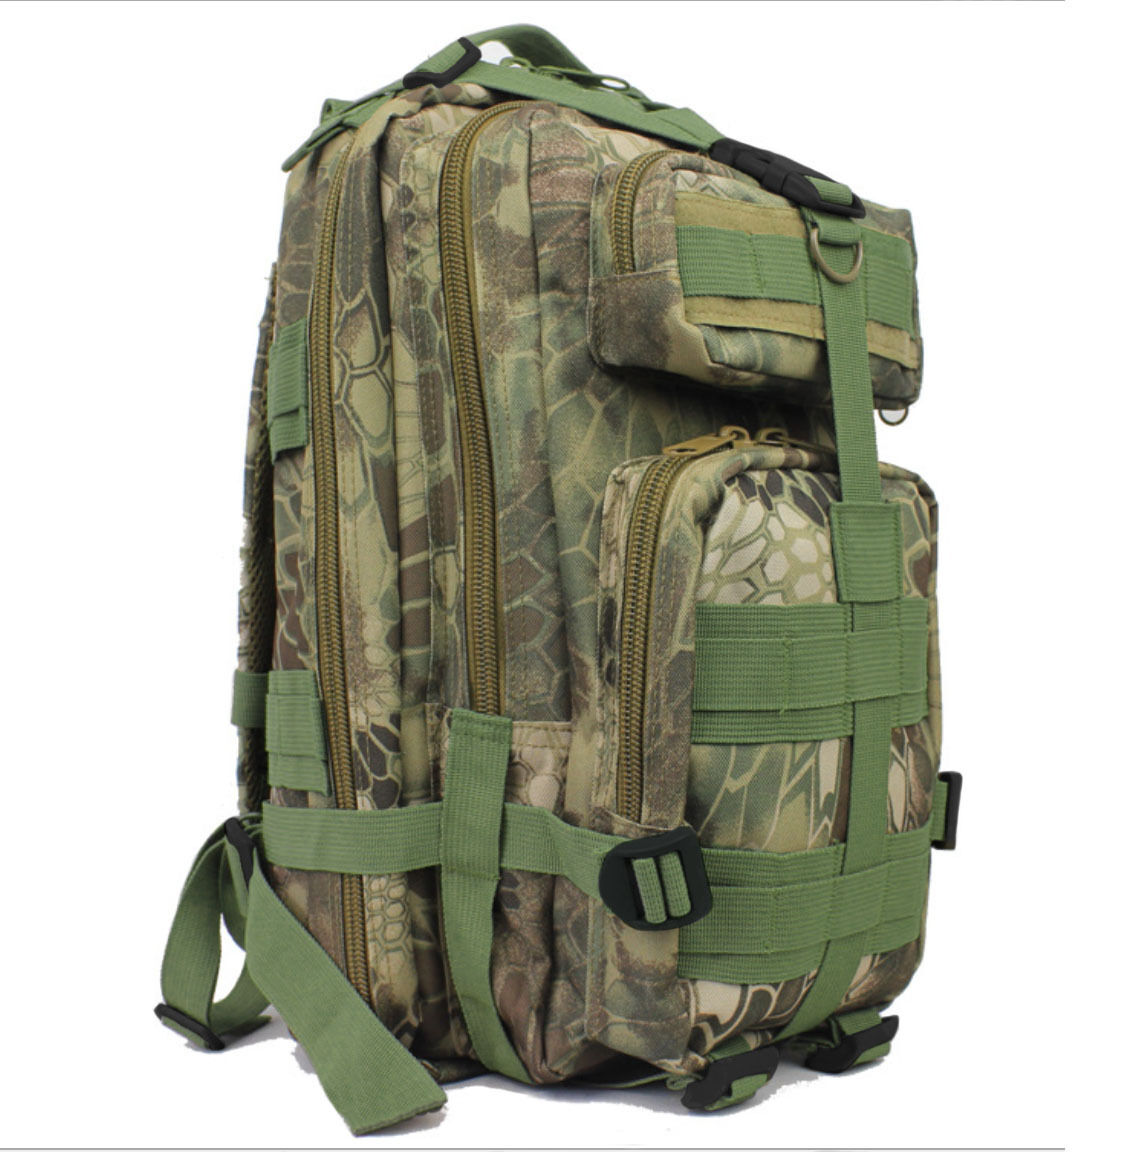 8L/10L/30L/55L/80L Outdoor Military Tactical Camping Hiking Trekking Backpack  30L Green Pythons Grain